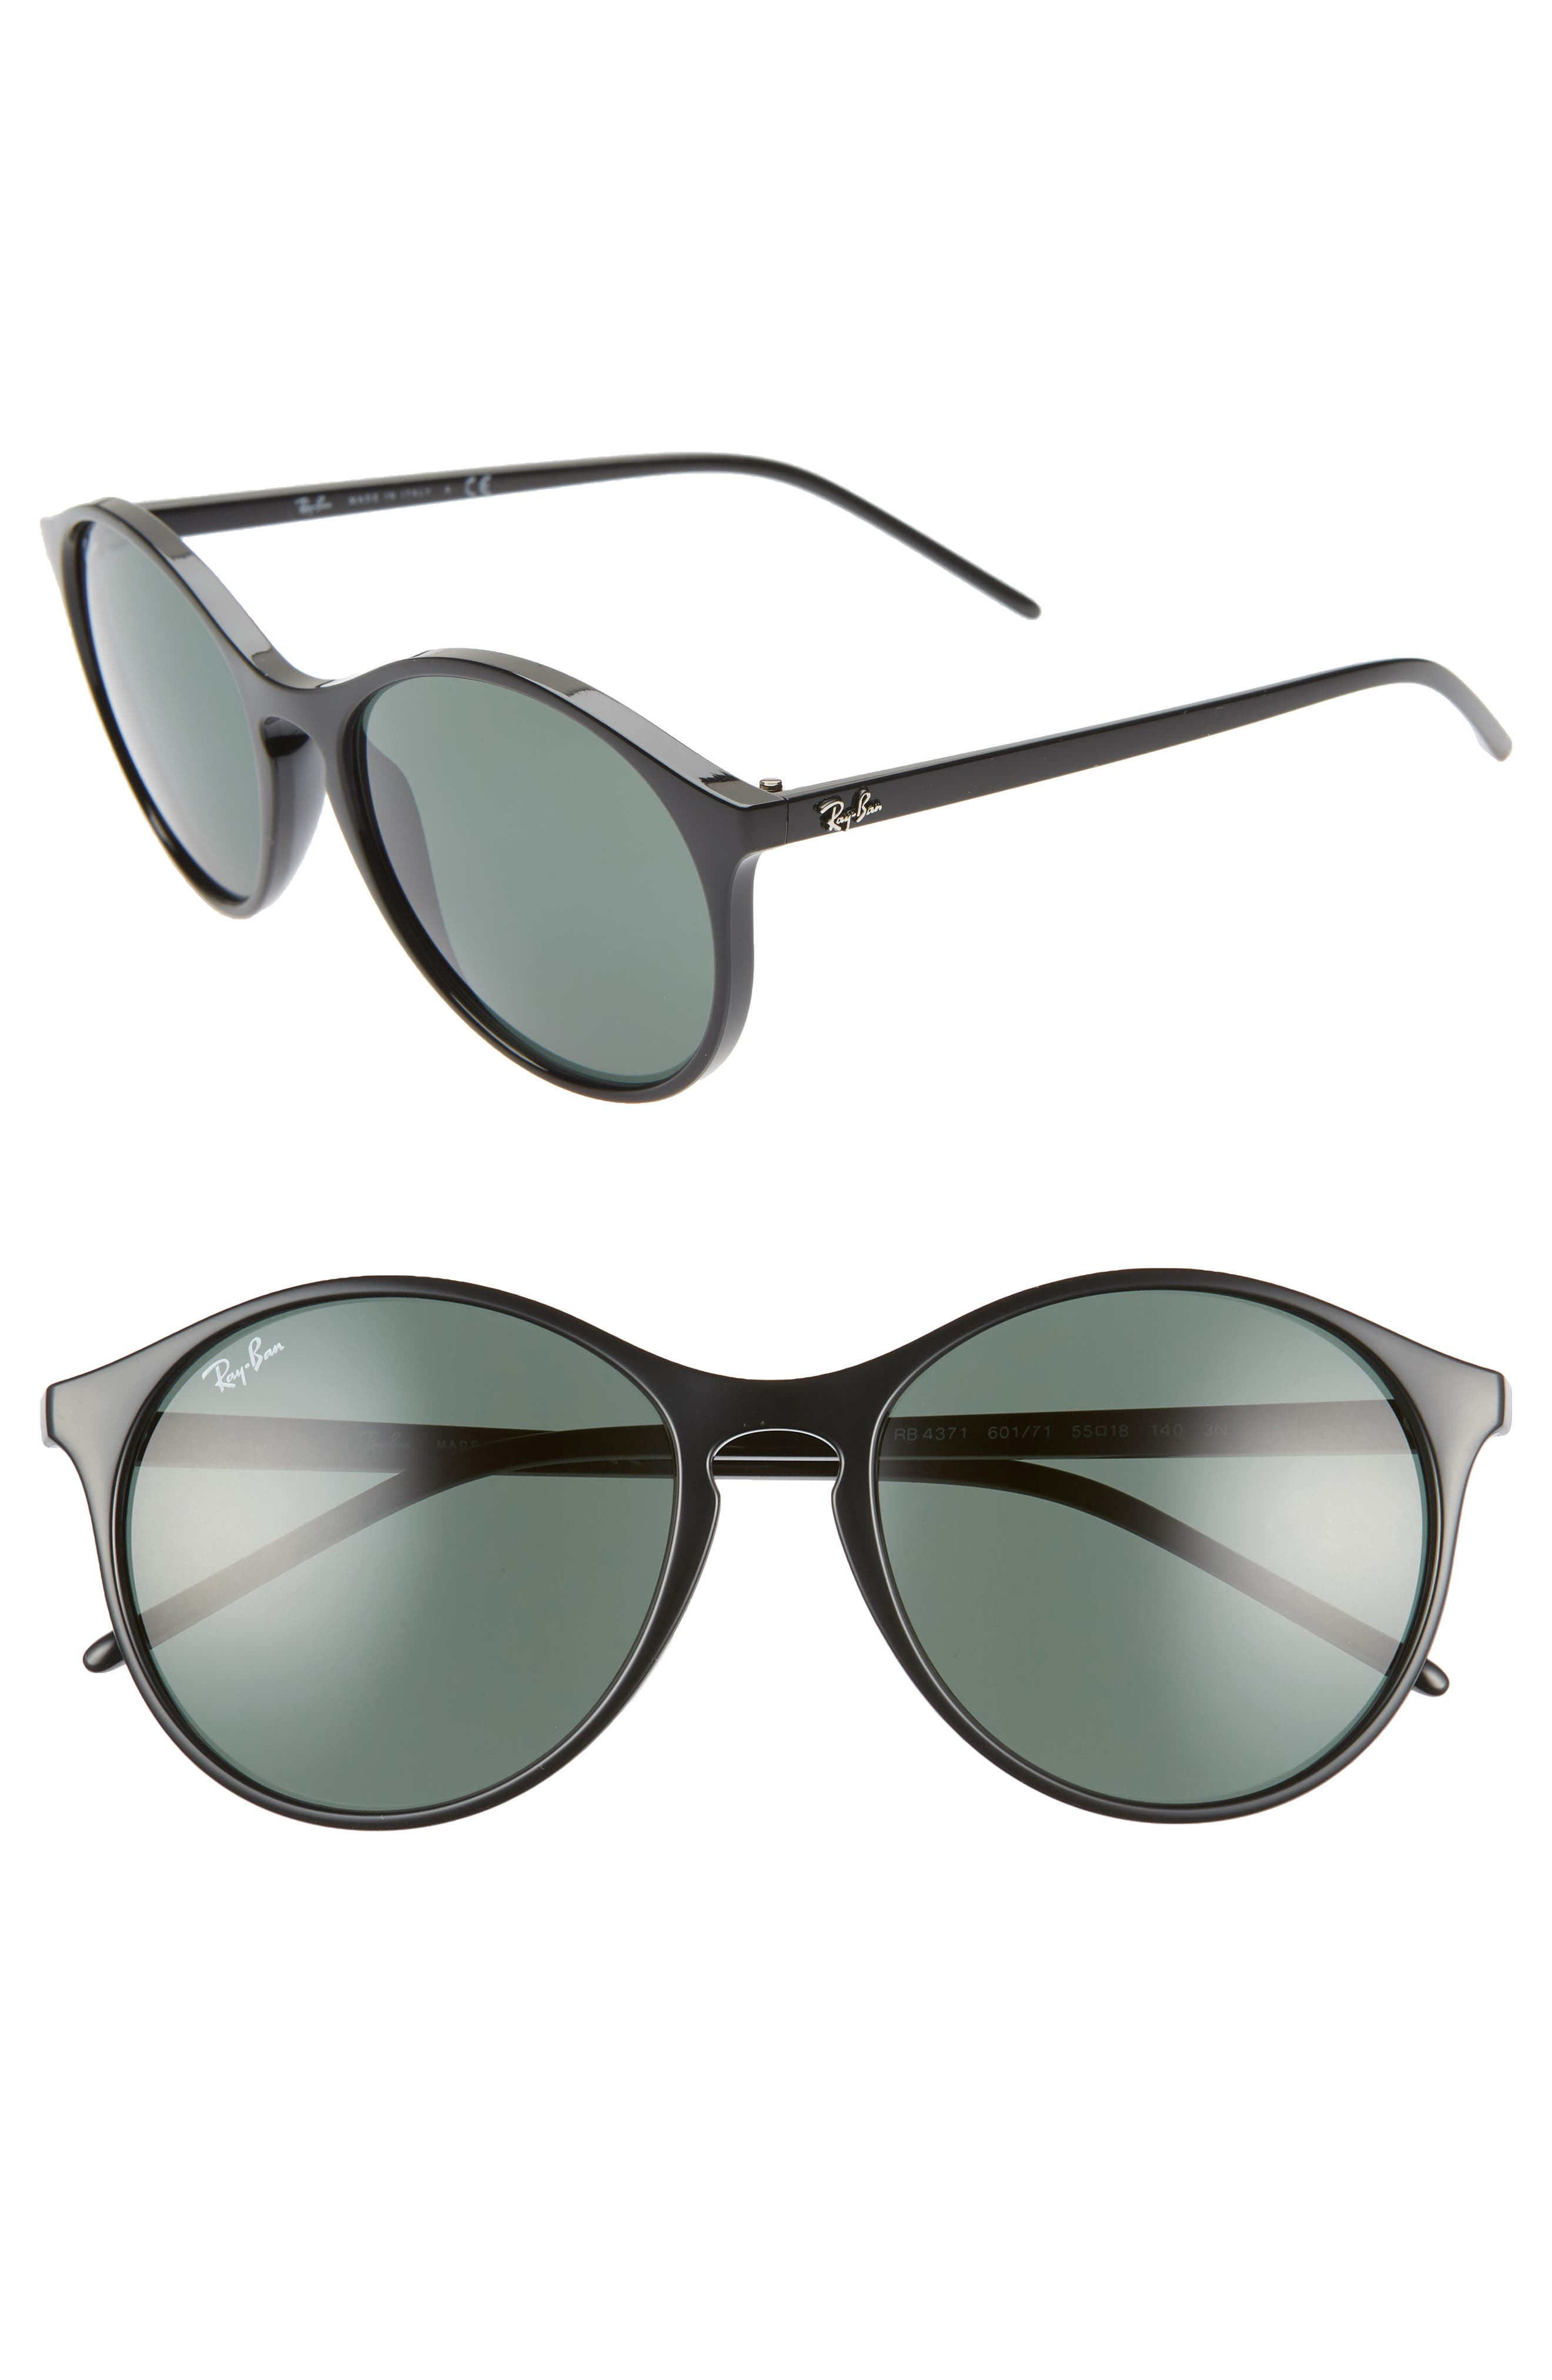 Highstreet 55mm Round Sunglasses,                             Main thumbnail 1, color,                             BLACK/ GREEN SOLID